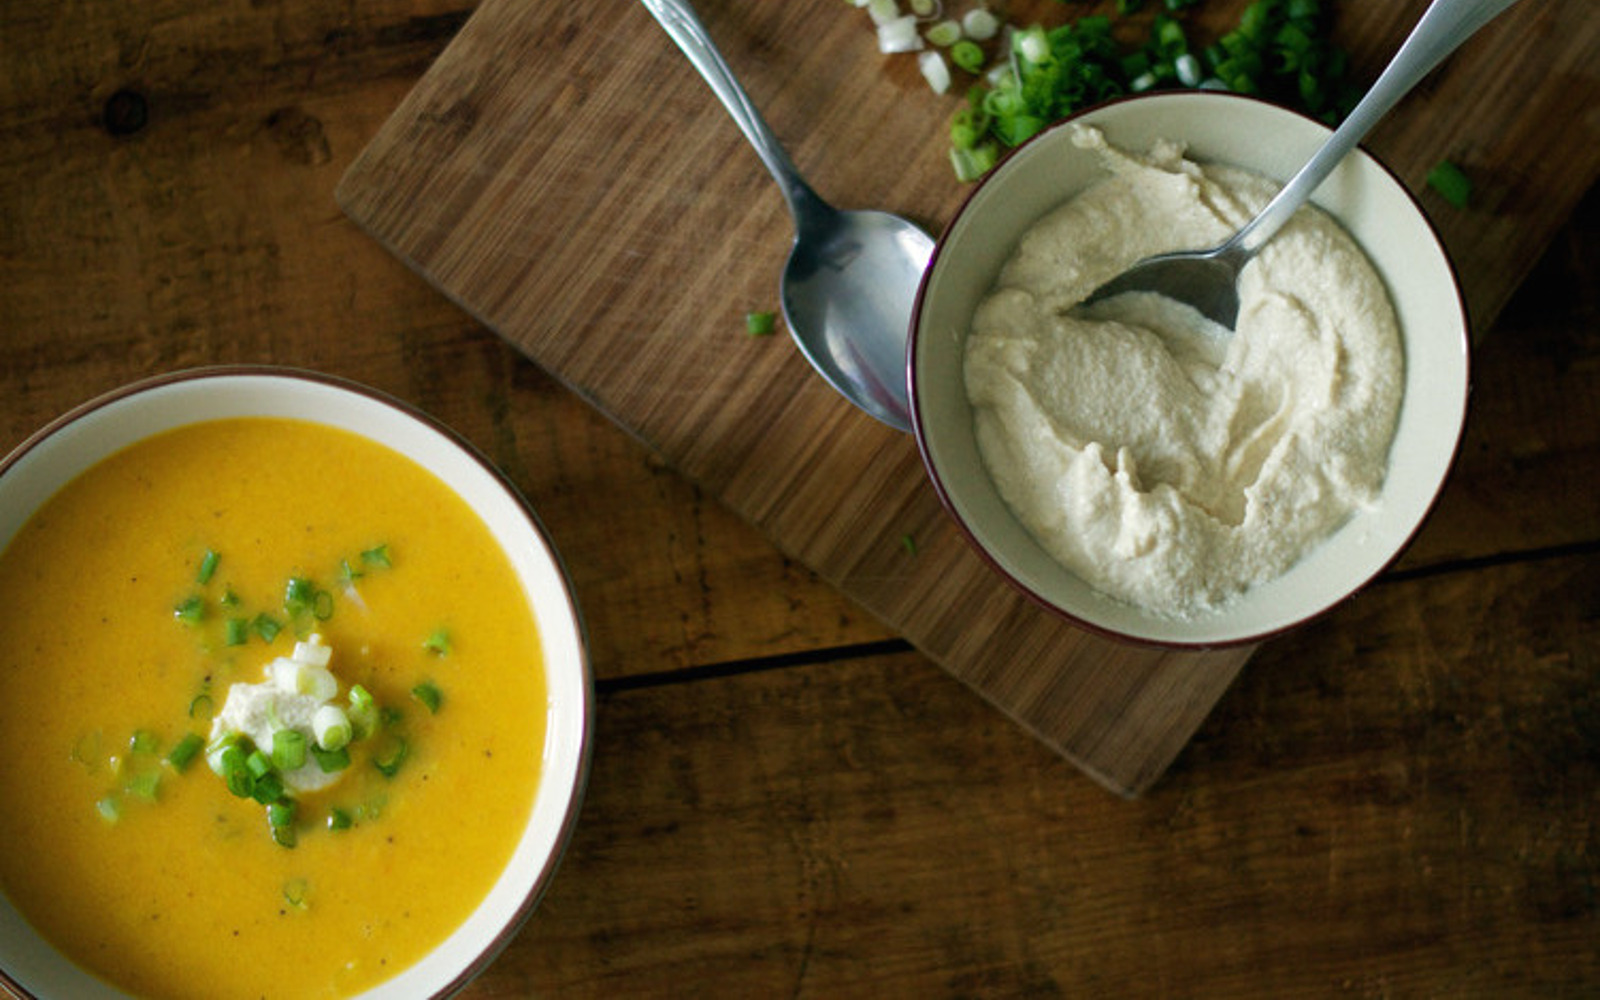 Roasted Garlic-Ginger Carrot Soup With a Miso Cashew Cream